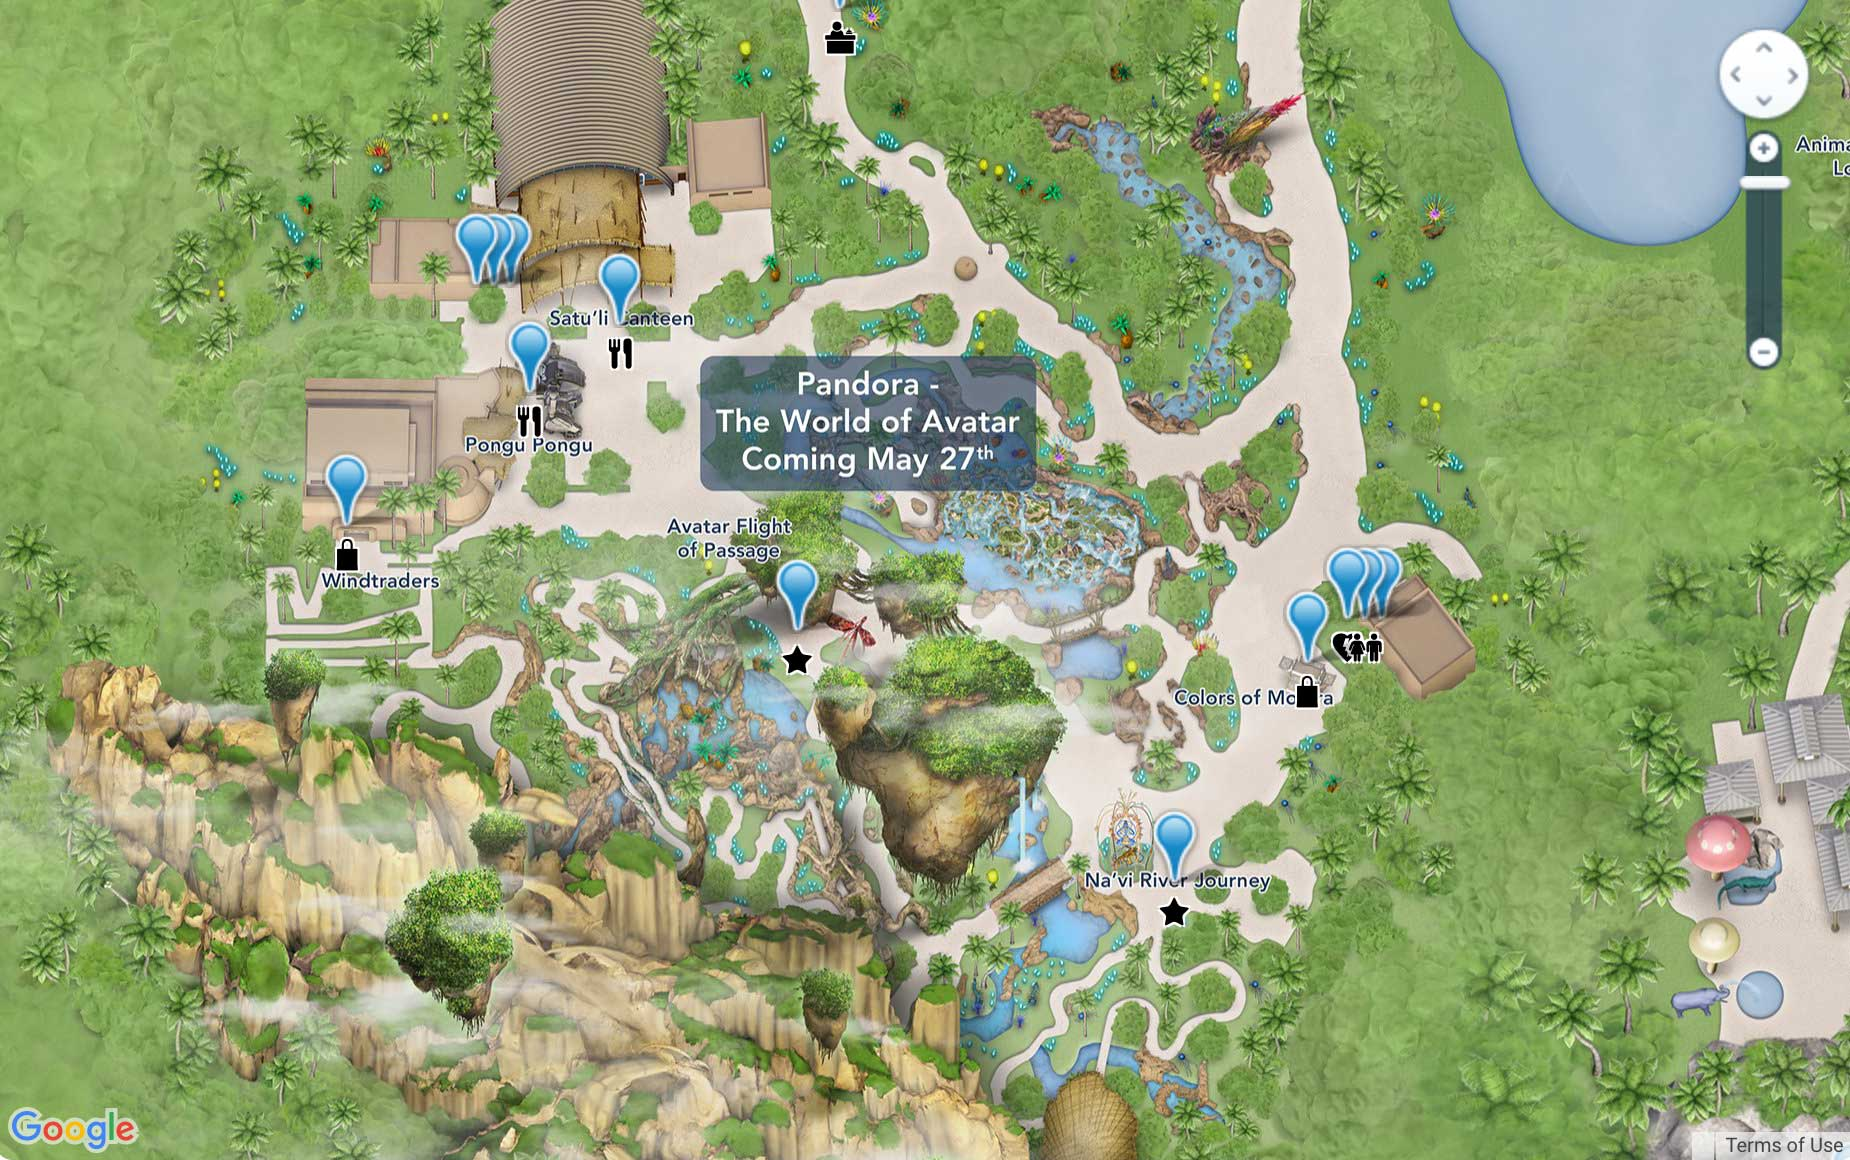 Photo disneys online walt disney world maps updated to include pandora the world of avatar map gumiabroncs Gallery